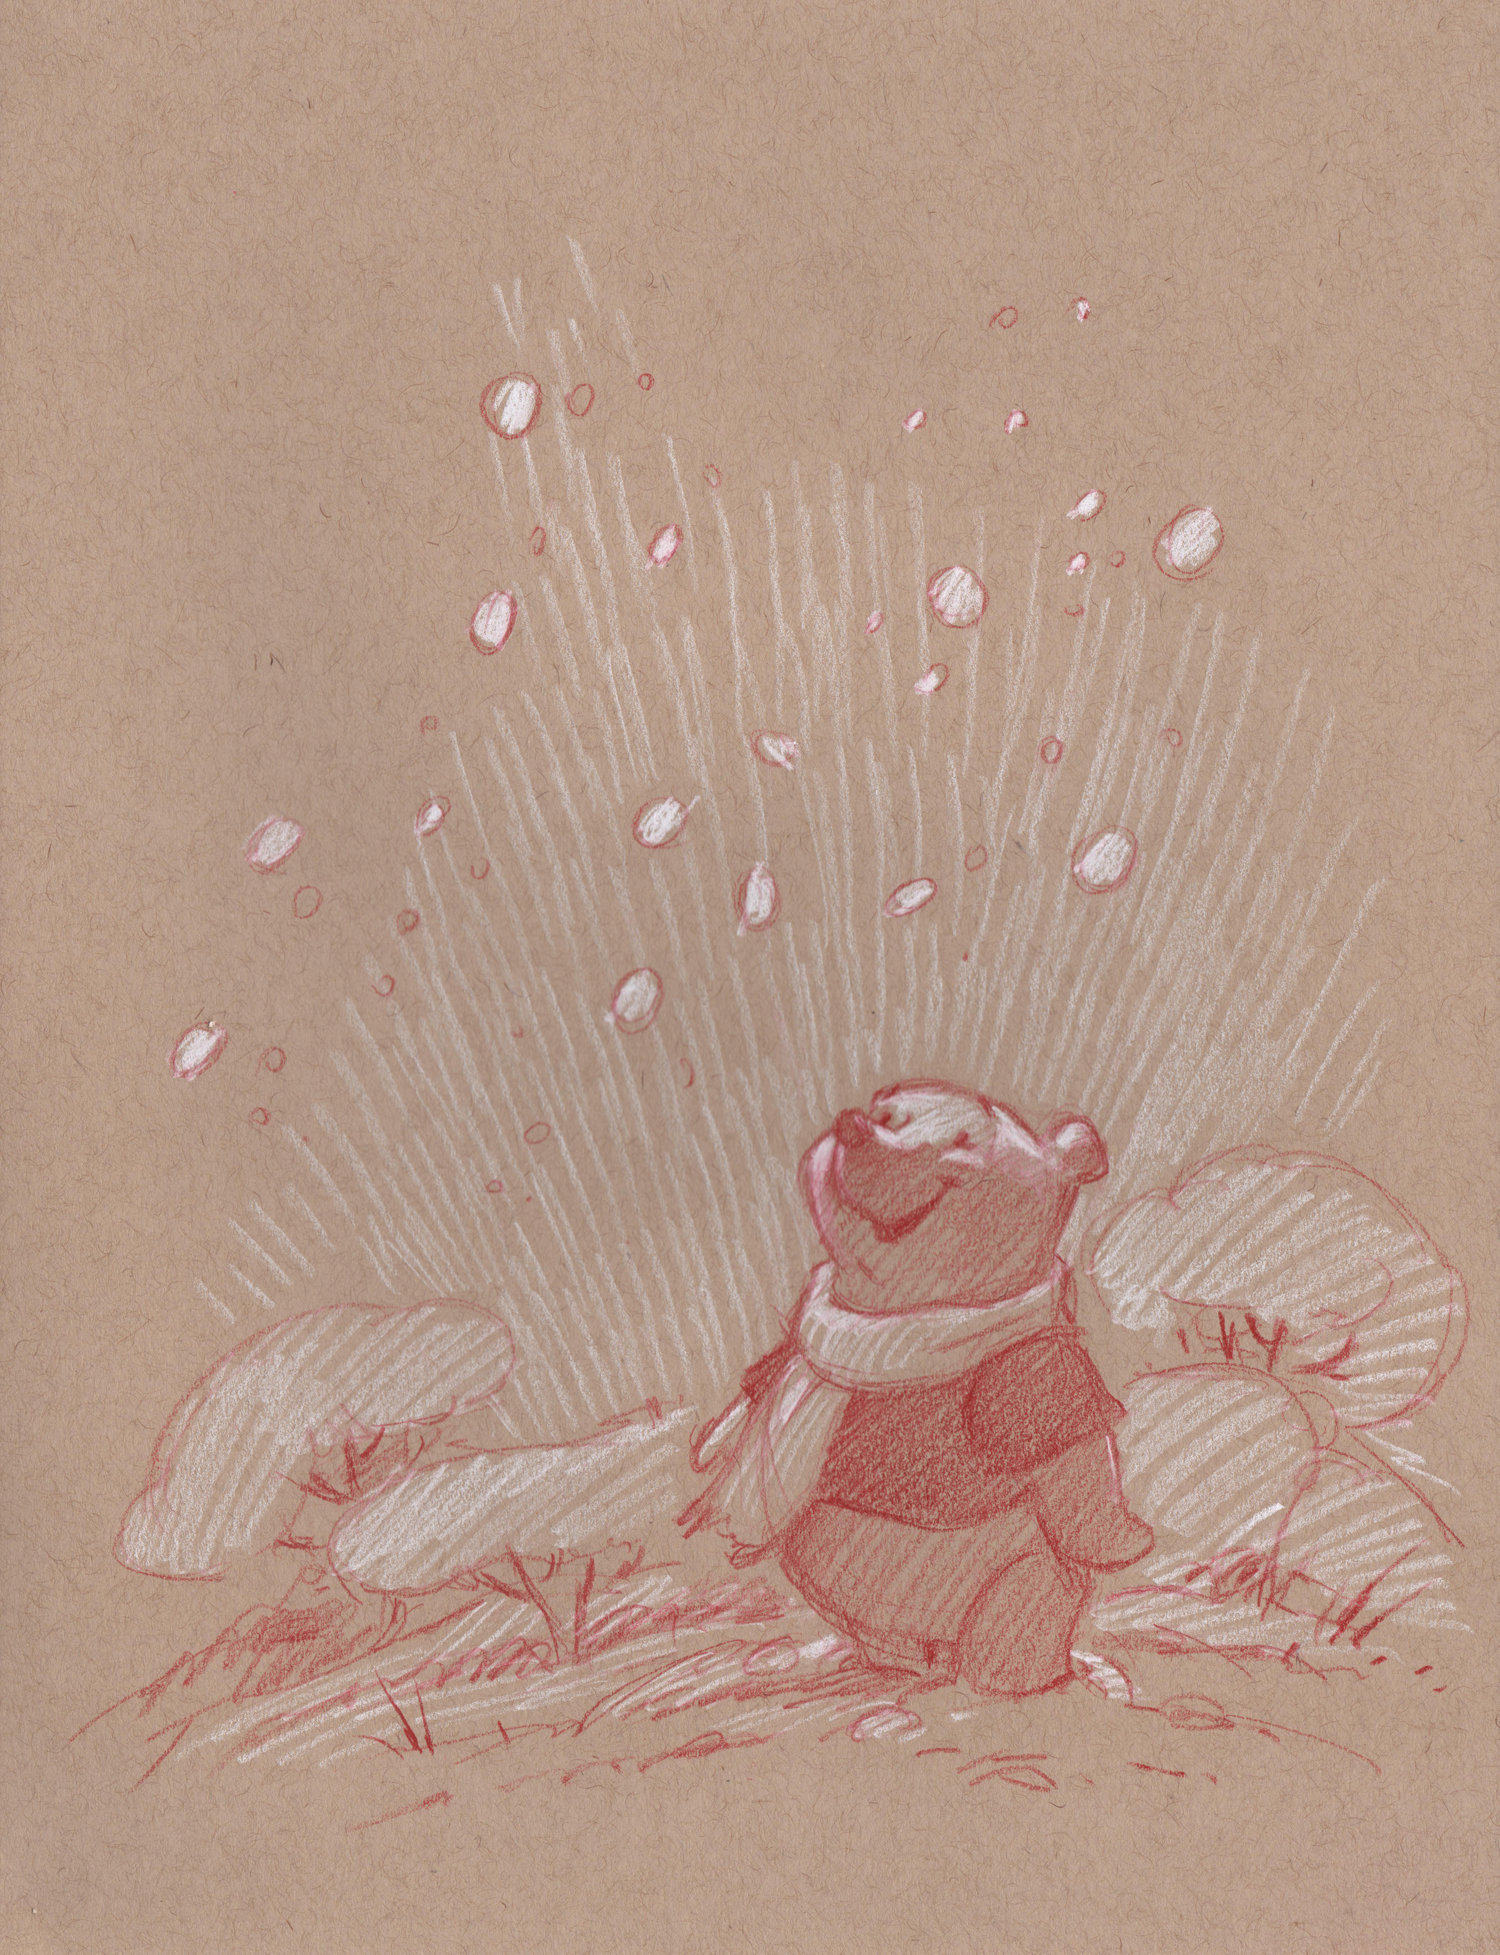 Winnie the Pooh with Snowflakes (Drawing) -